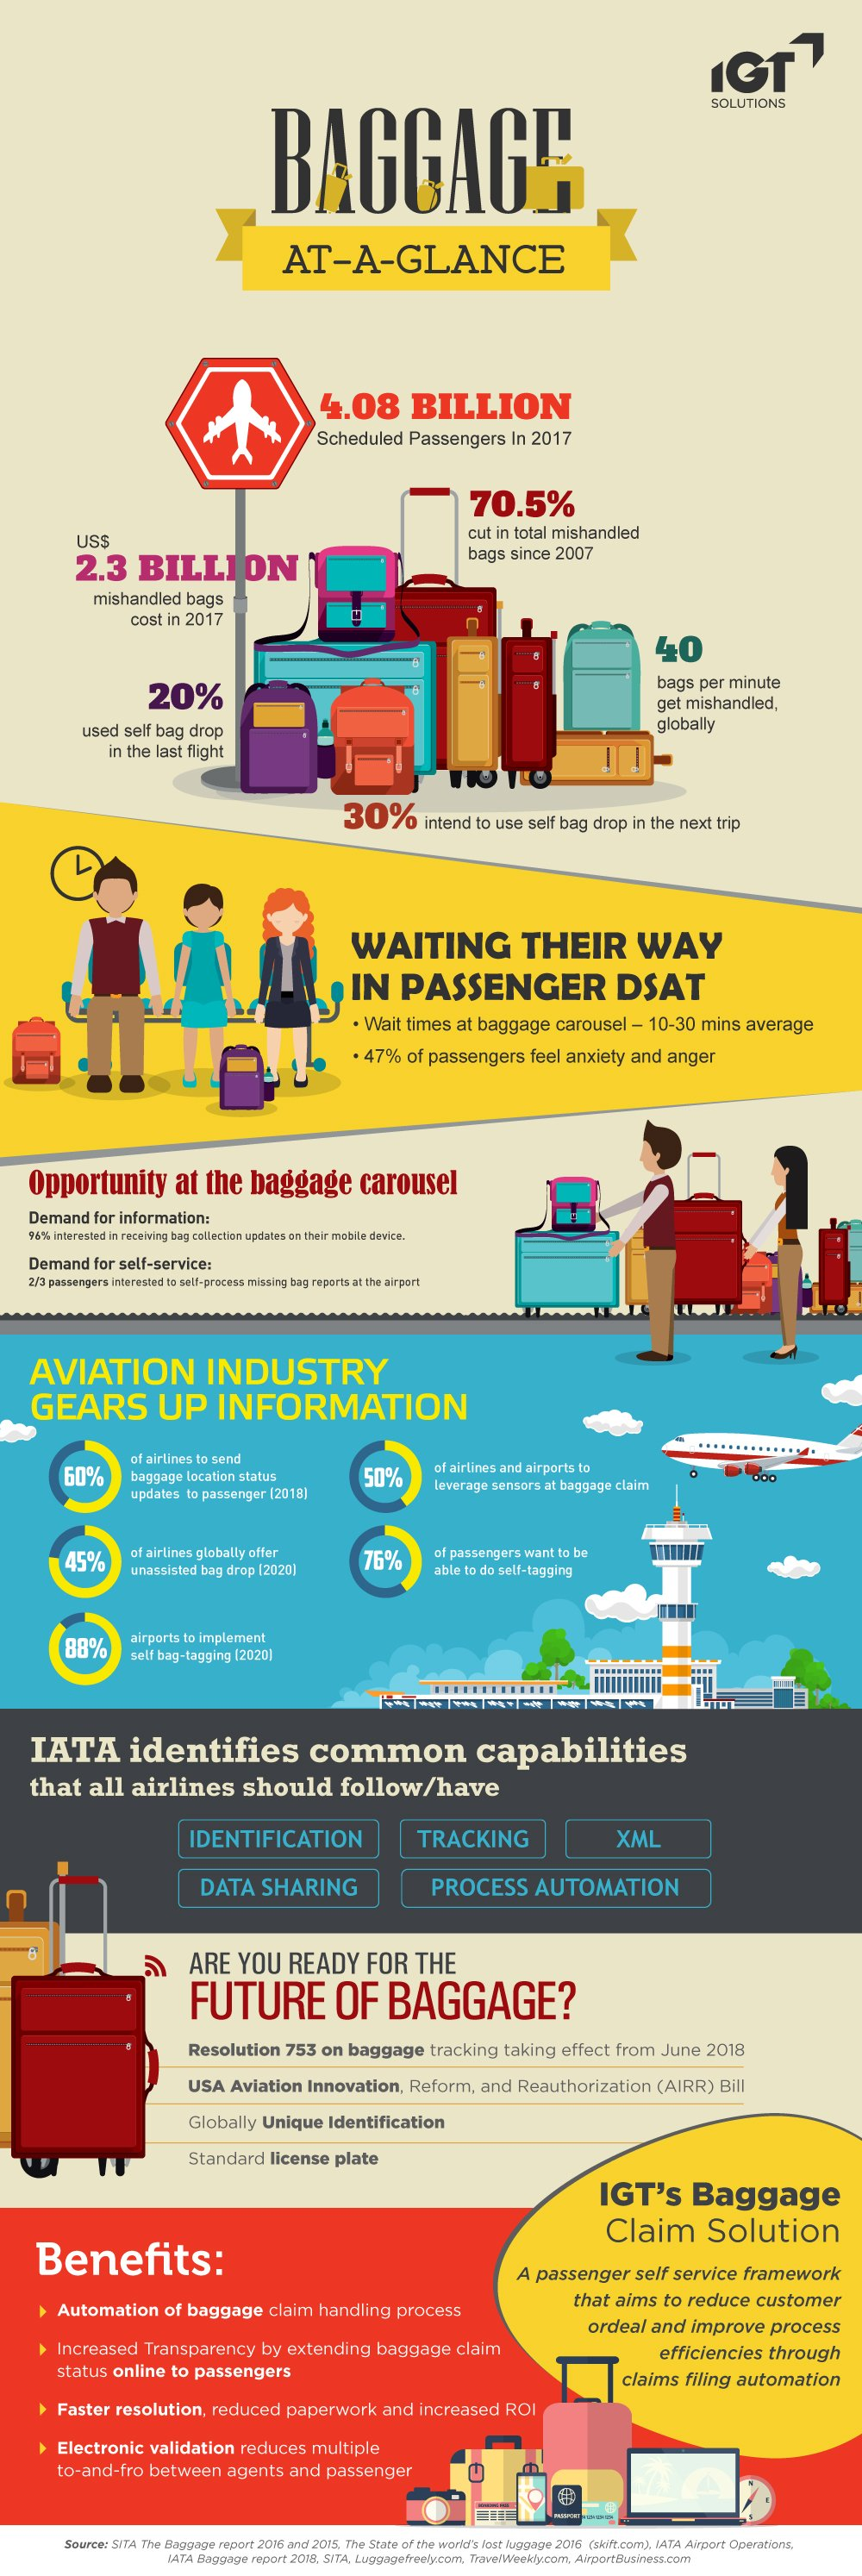 Digitization and Automation in Baggage Services Landscape